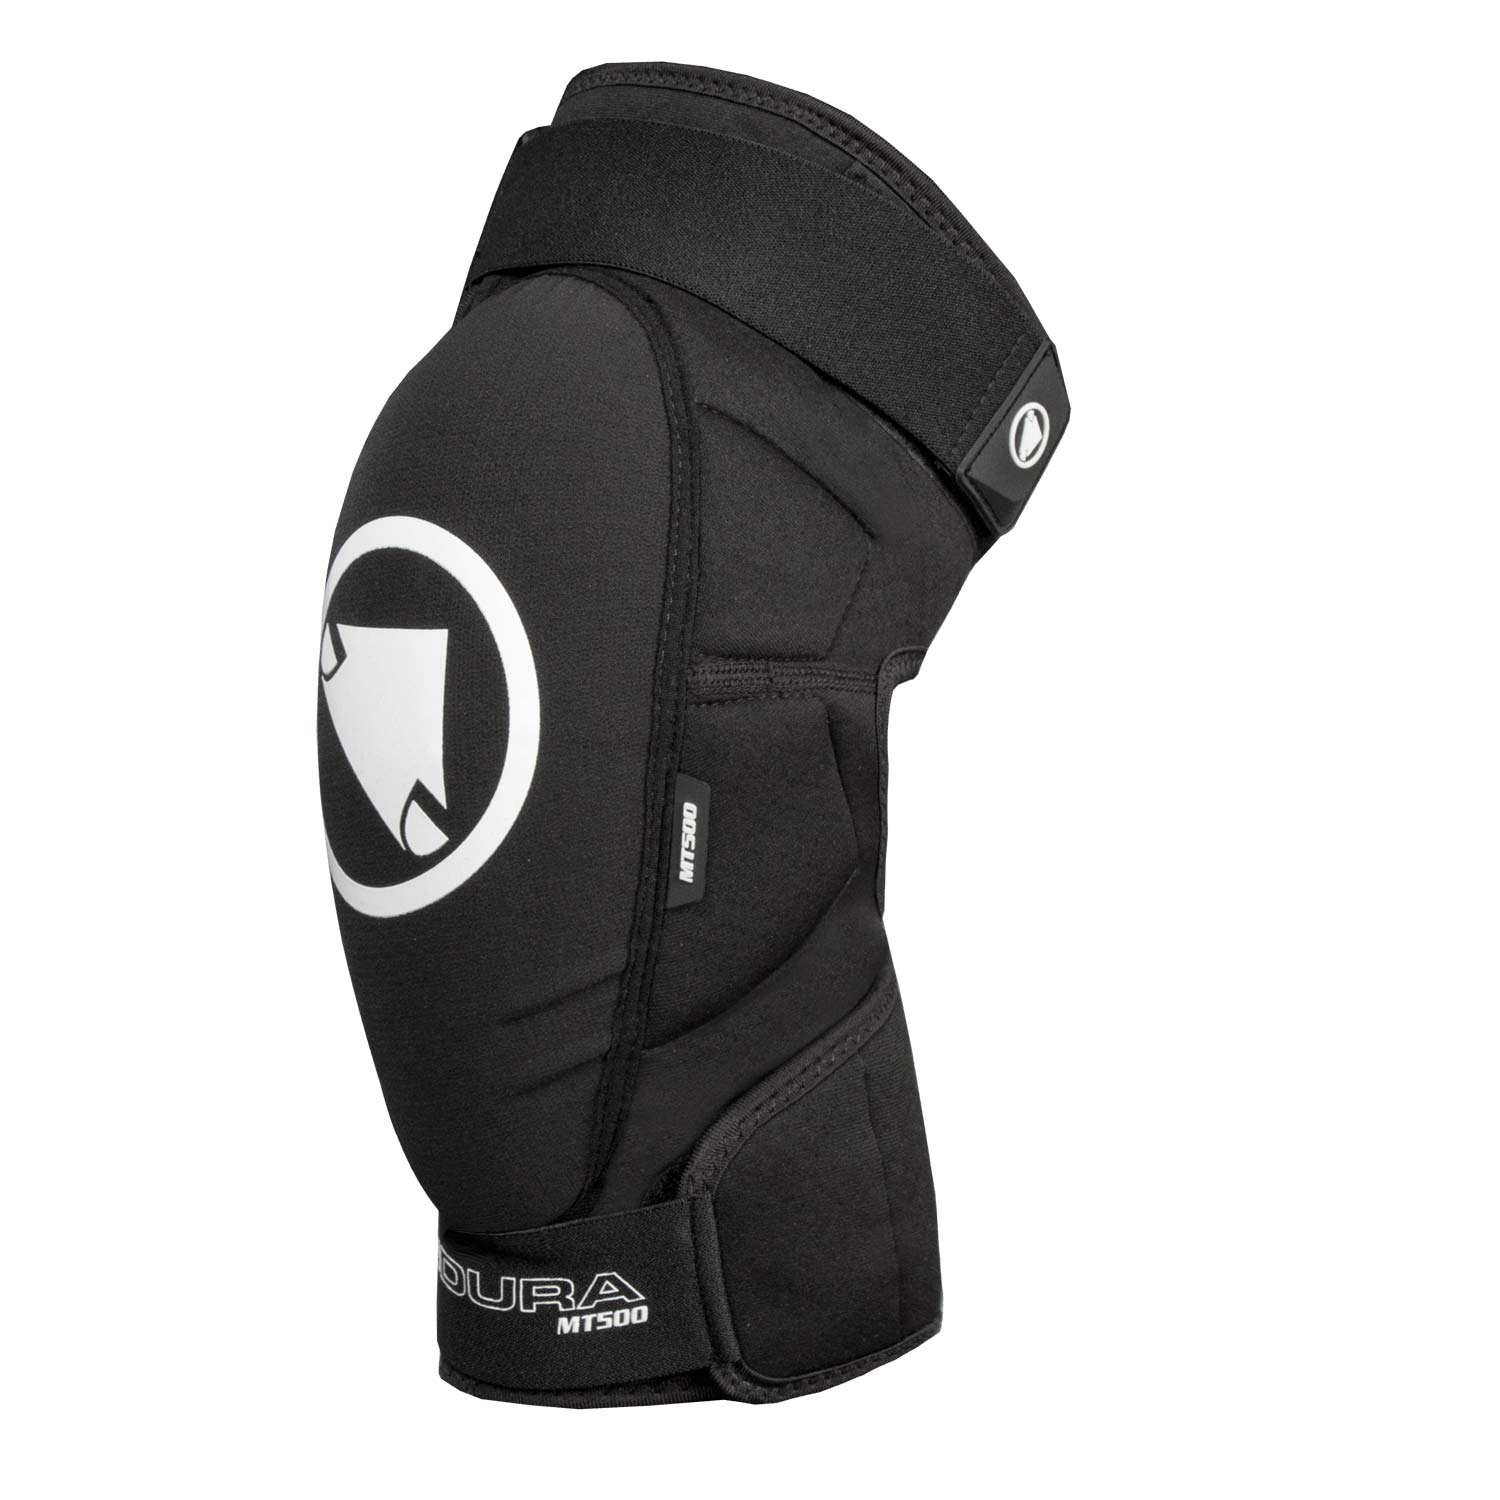 MT500 Knee Protector Black